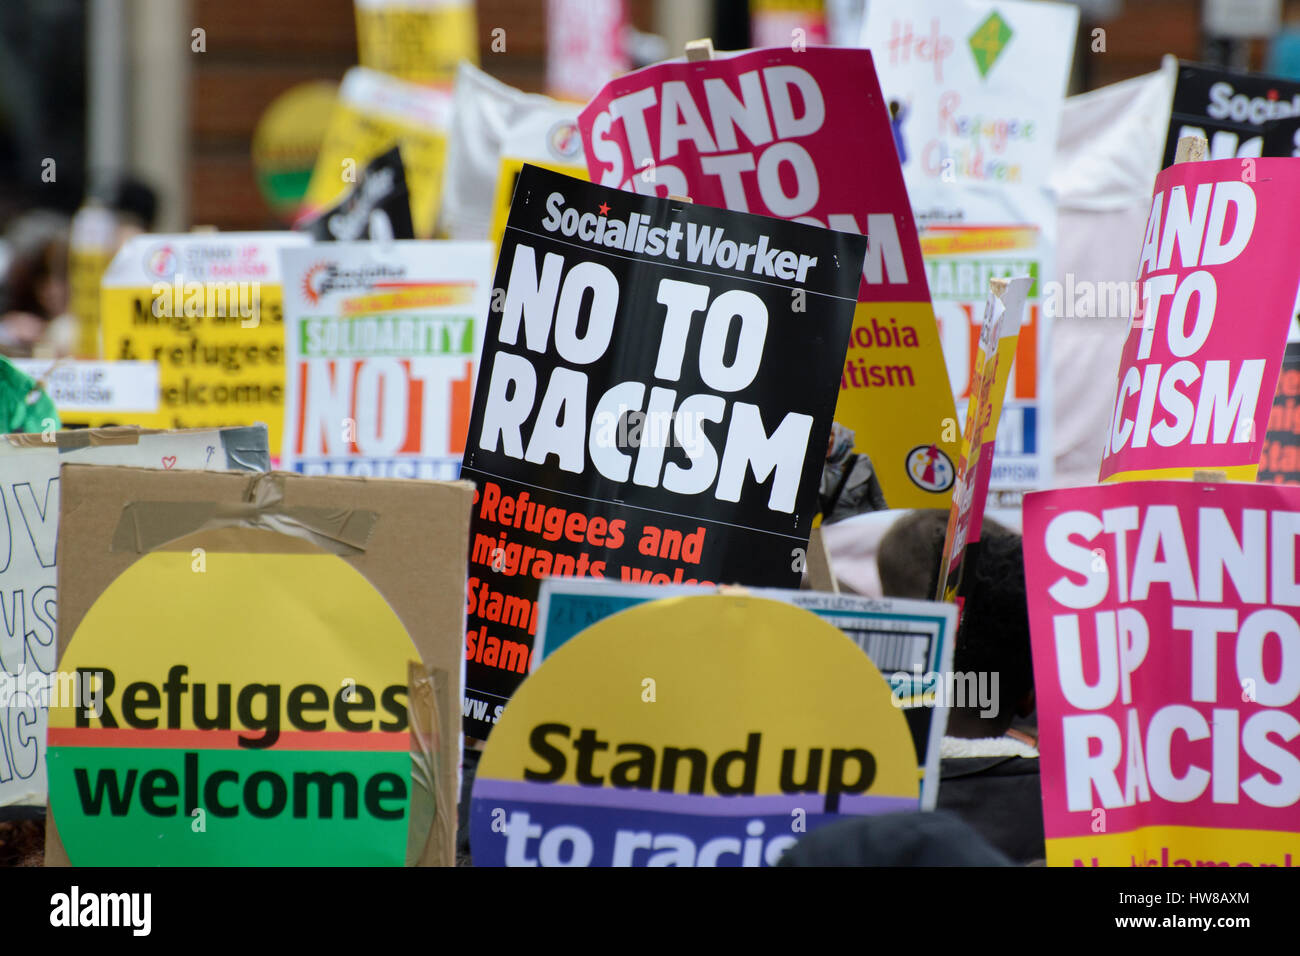 London, UK. 18th March 2017. Thousands of protesters march through central London protesting Against Racism on UN - Stock Image